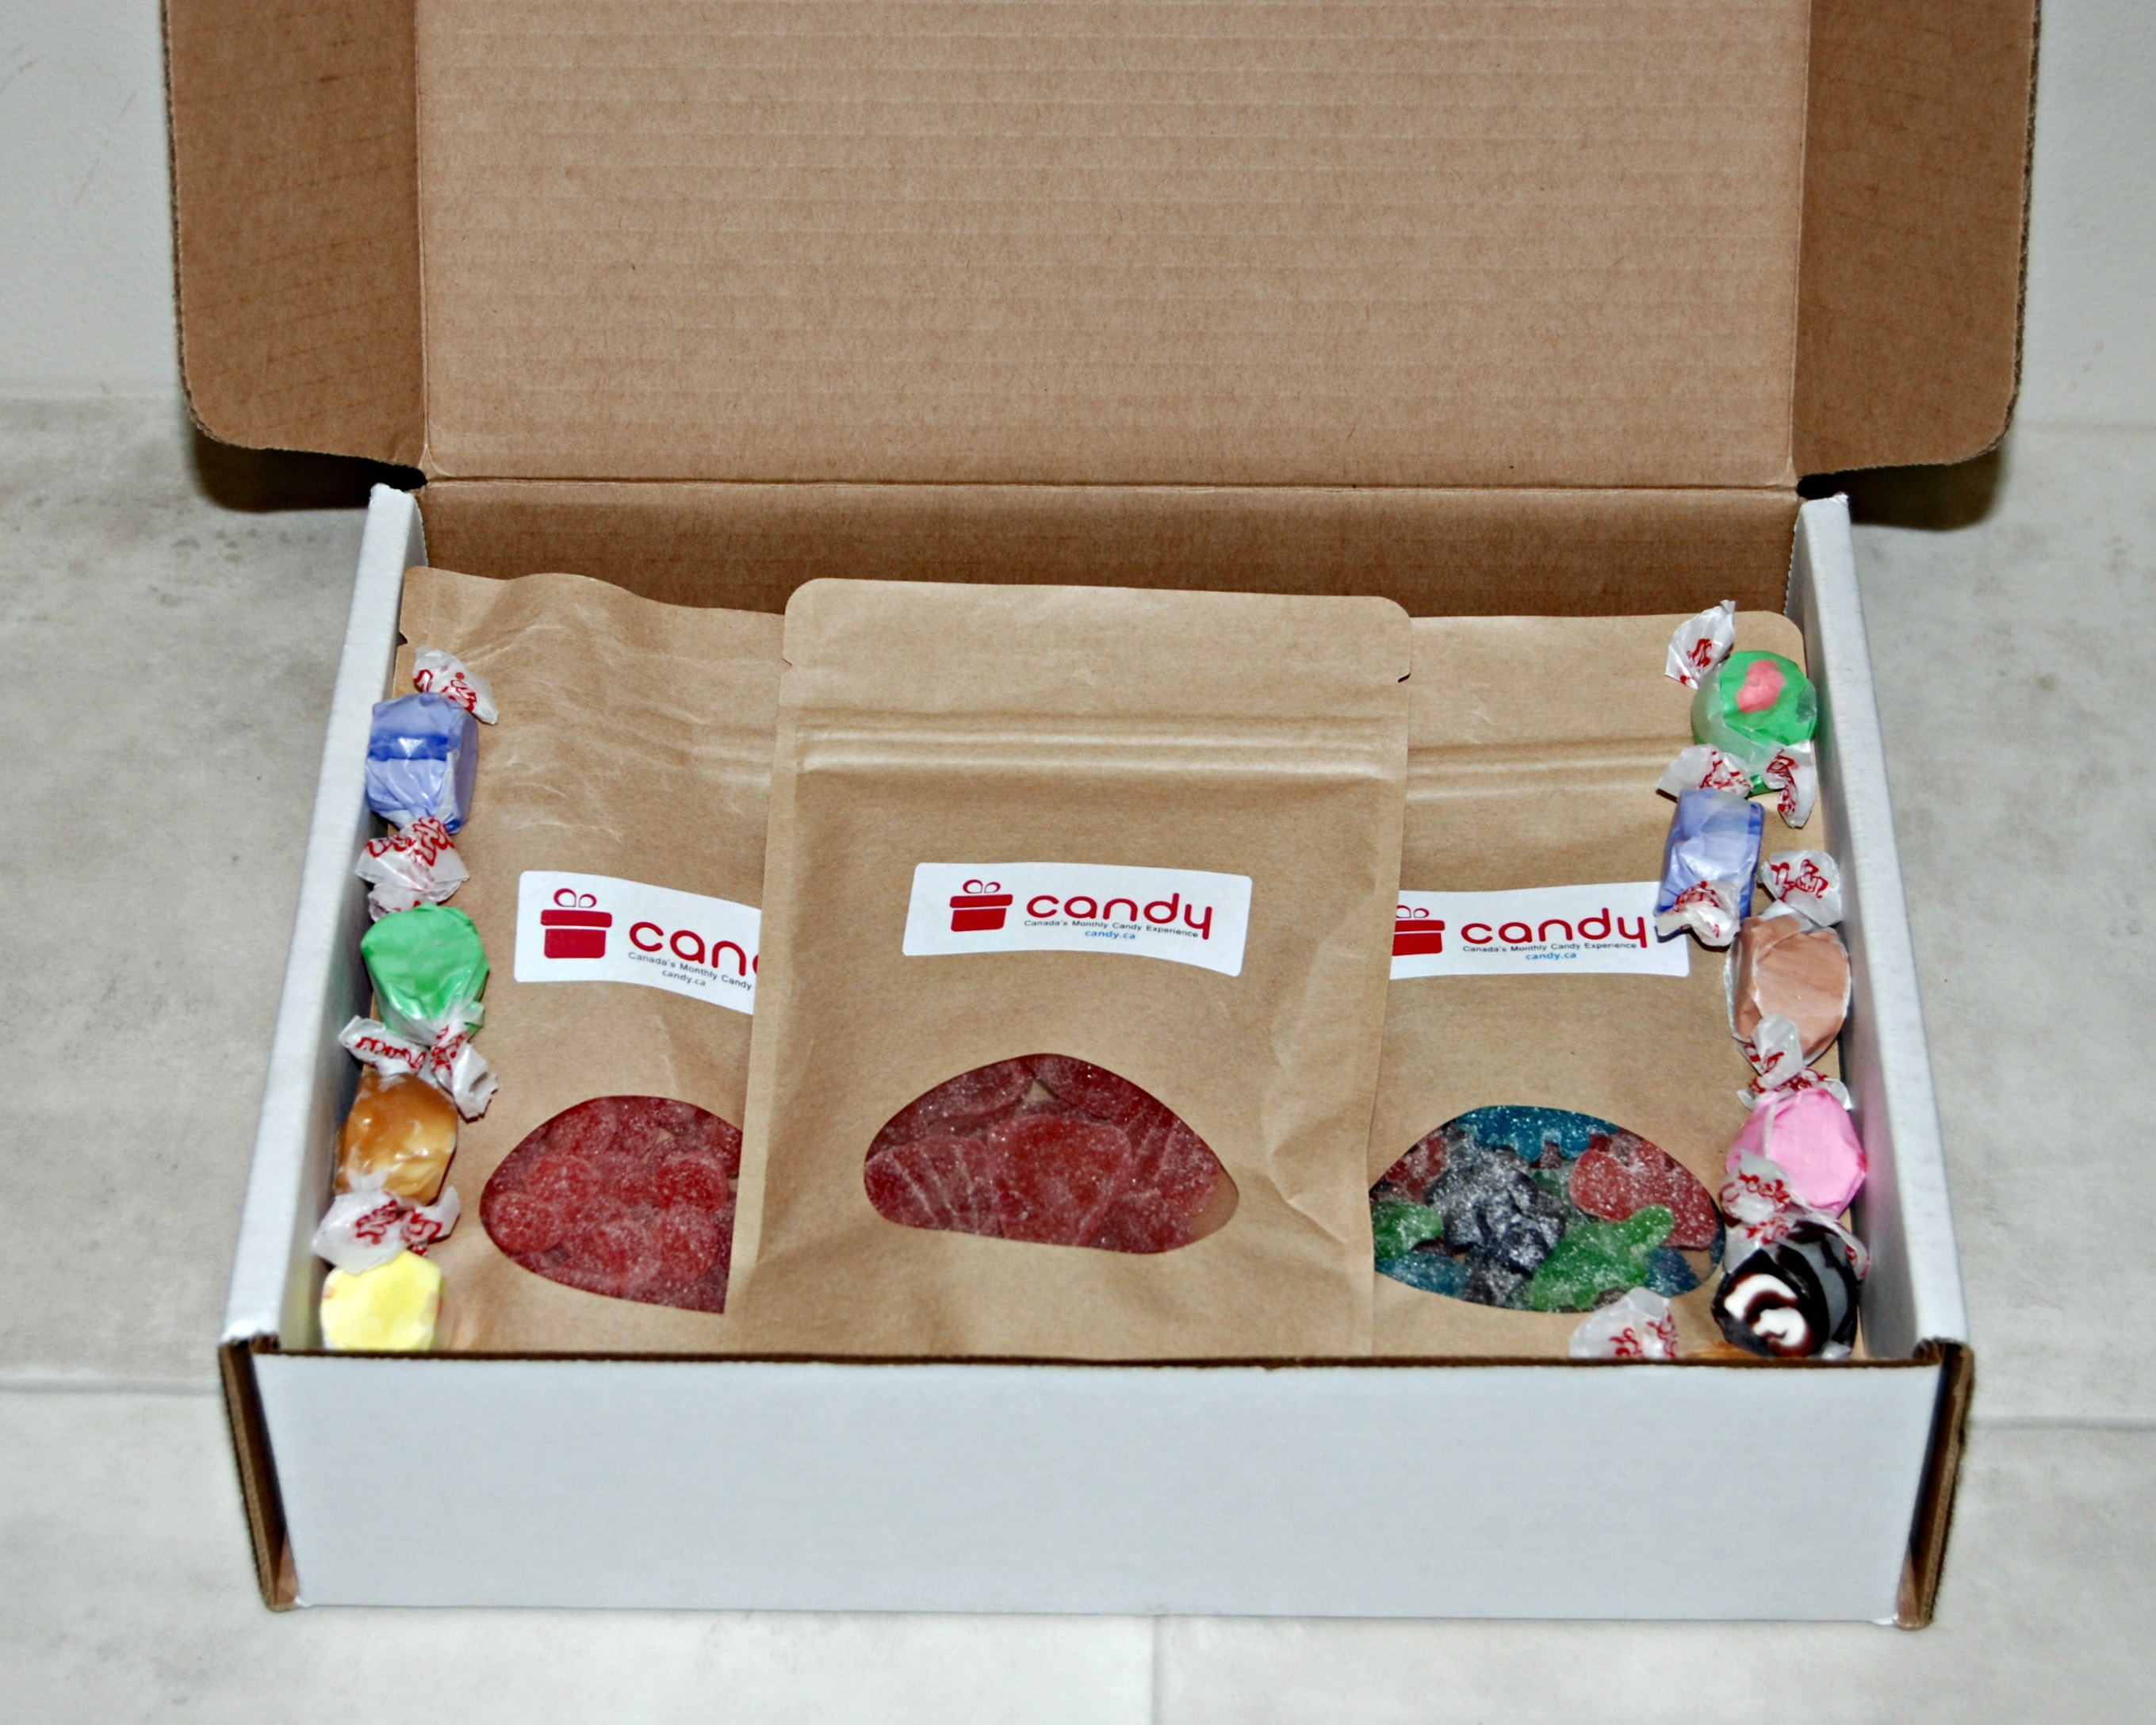 Candy.Ca is a candy store experience that is delivered right to you. Each month you\u0027ll receive a curated selection of candy from Canada and beyond. & Candy.Ca - Bringing The Sweets Right to my Door - Naturally Cracked